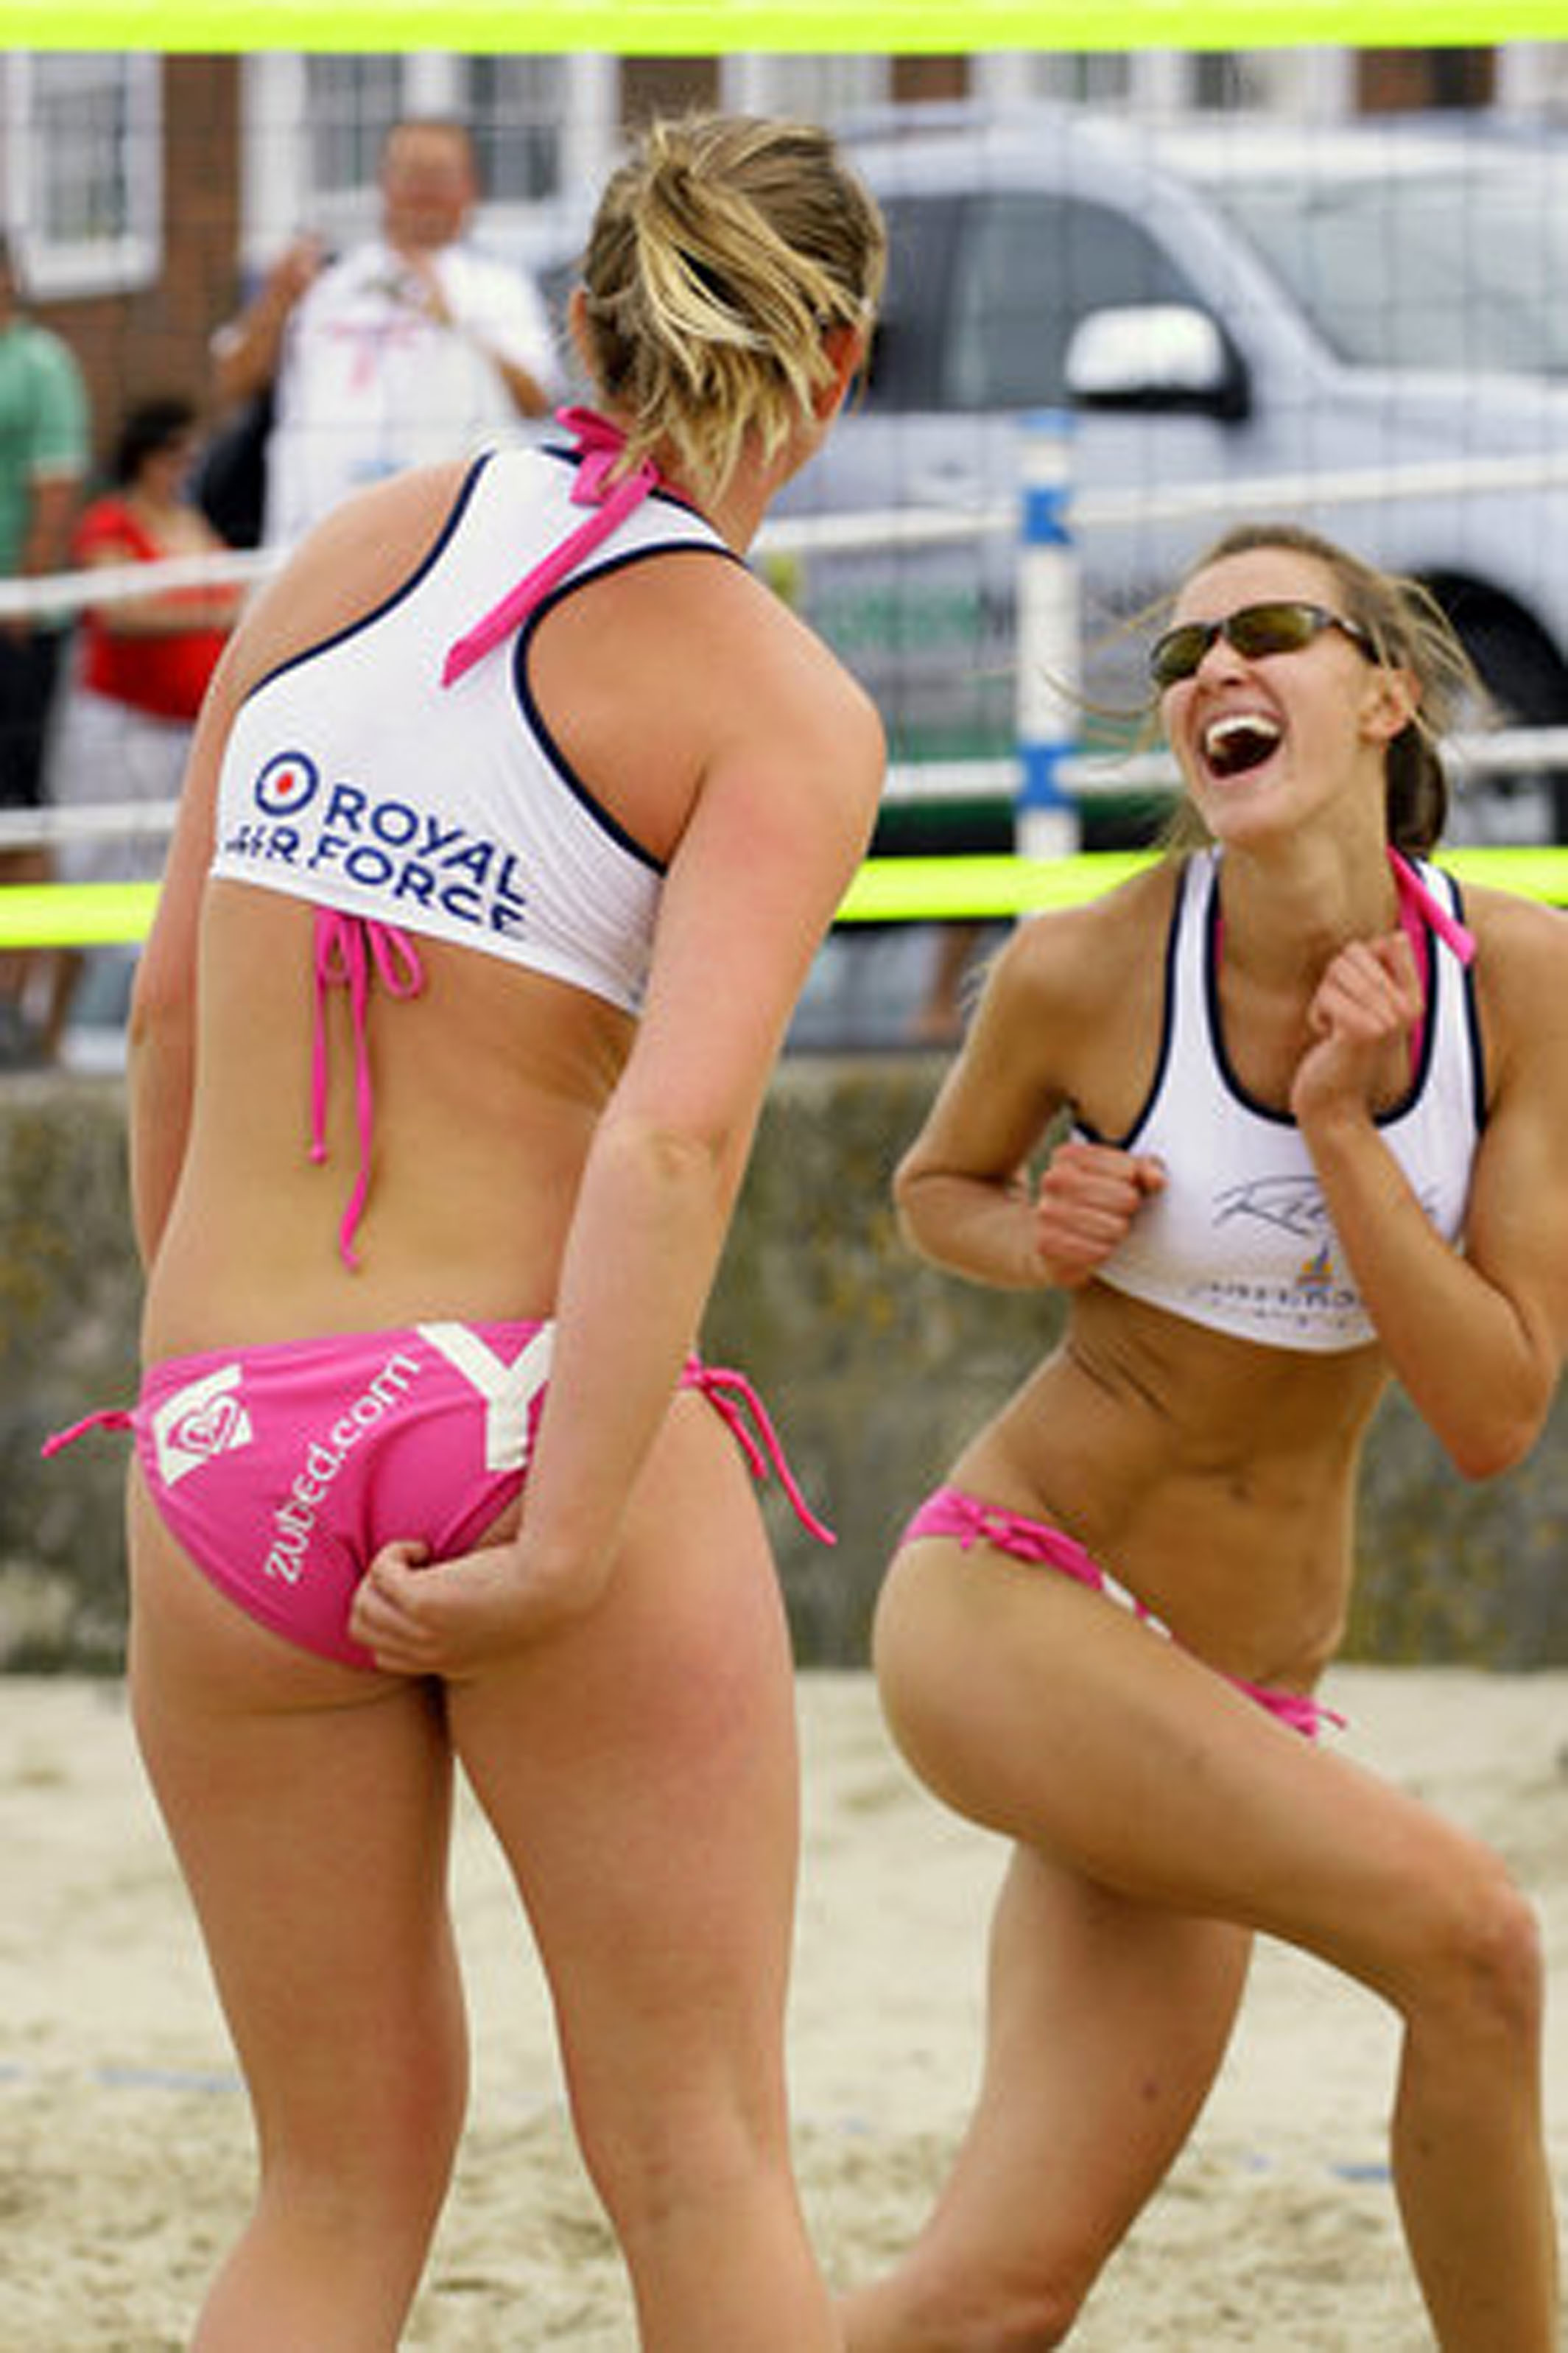 sexy female athletes with big butts